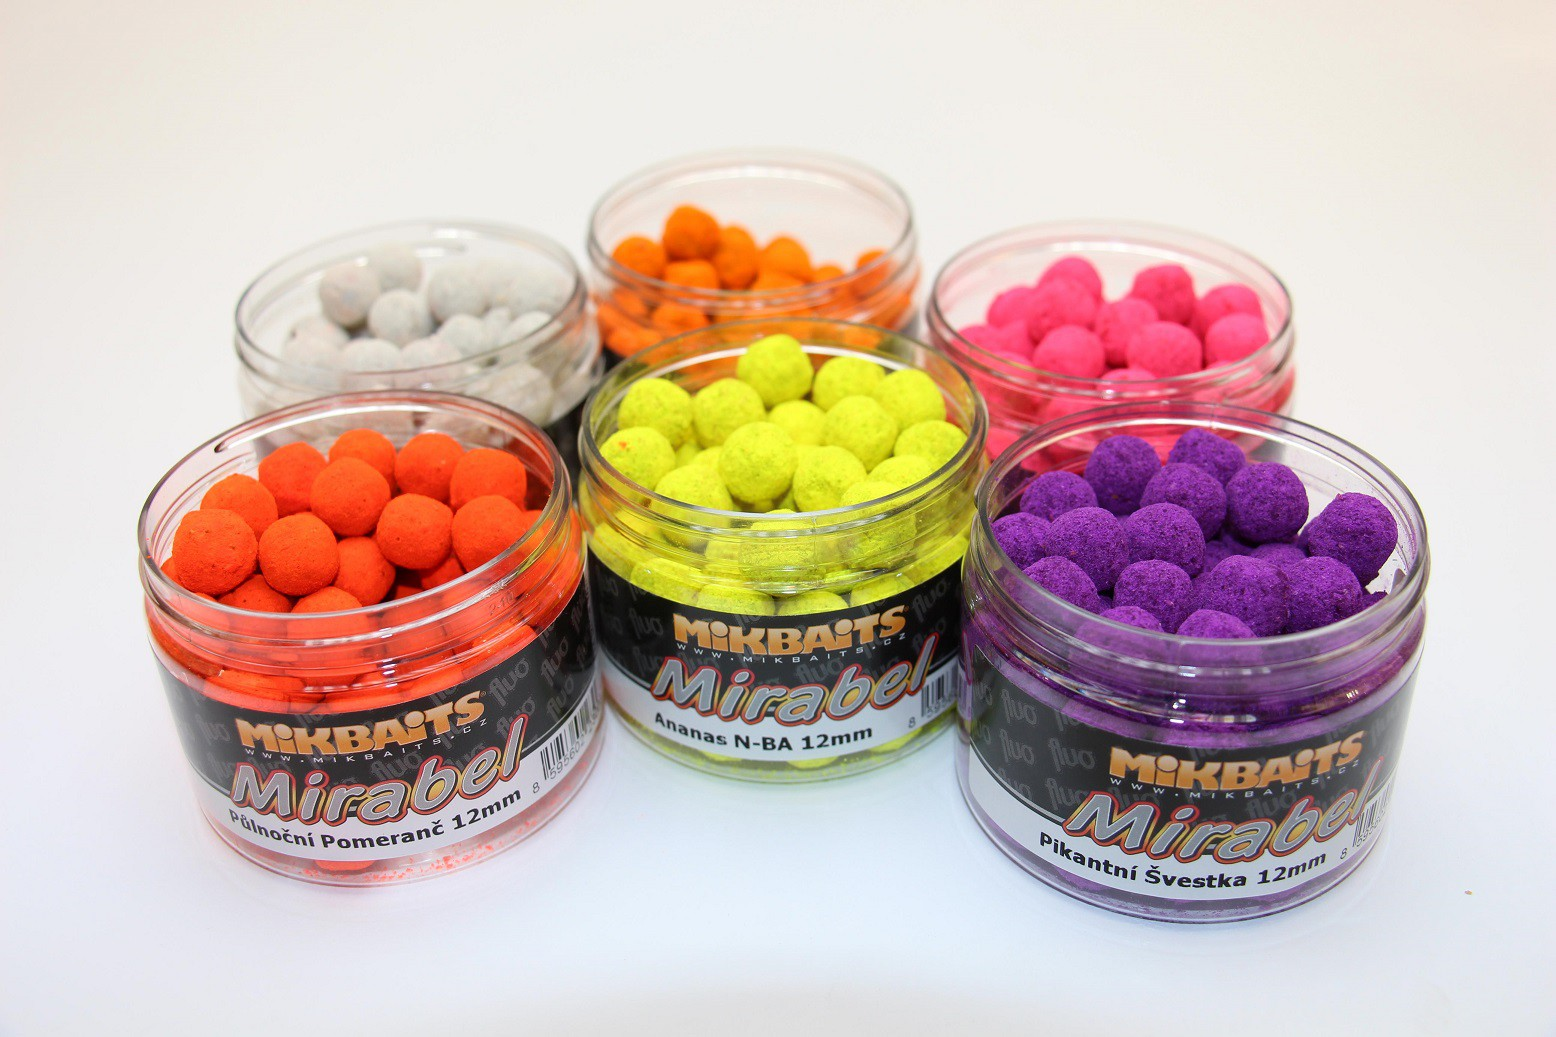 MIKBAITS Mirabel Fluo boilie 150ml - SLADKÁ KUKURICA 12mm